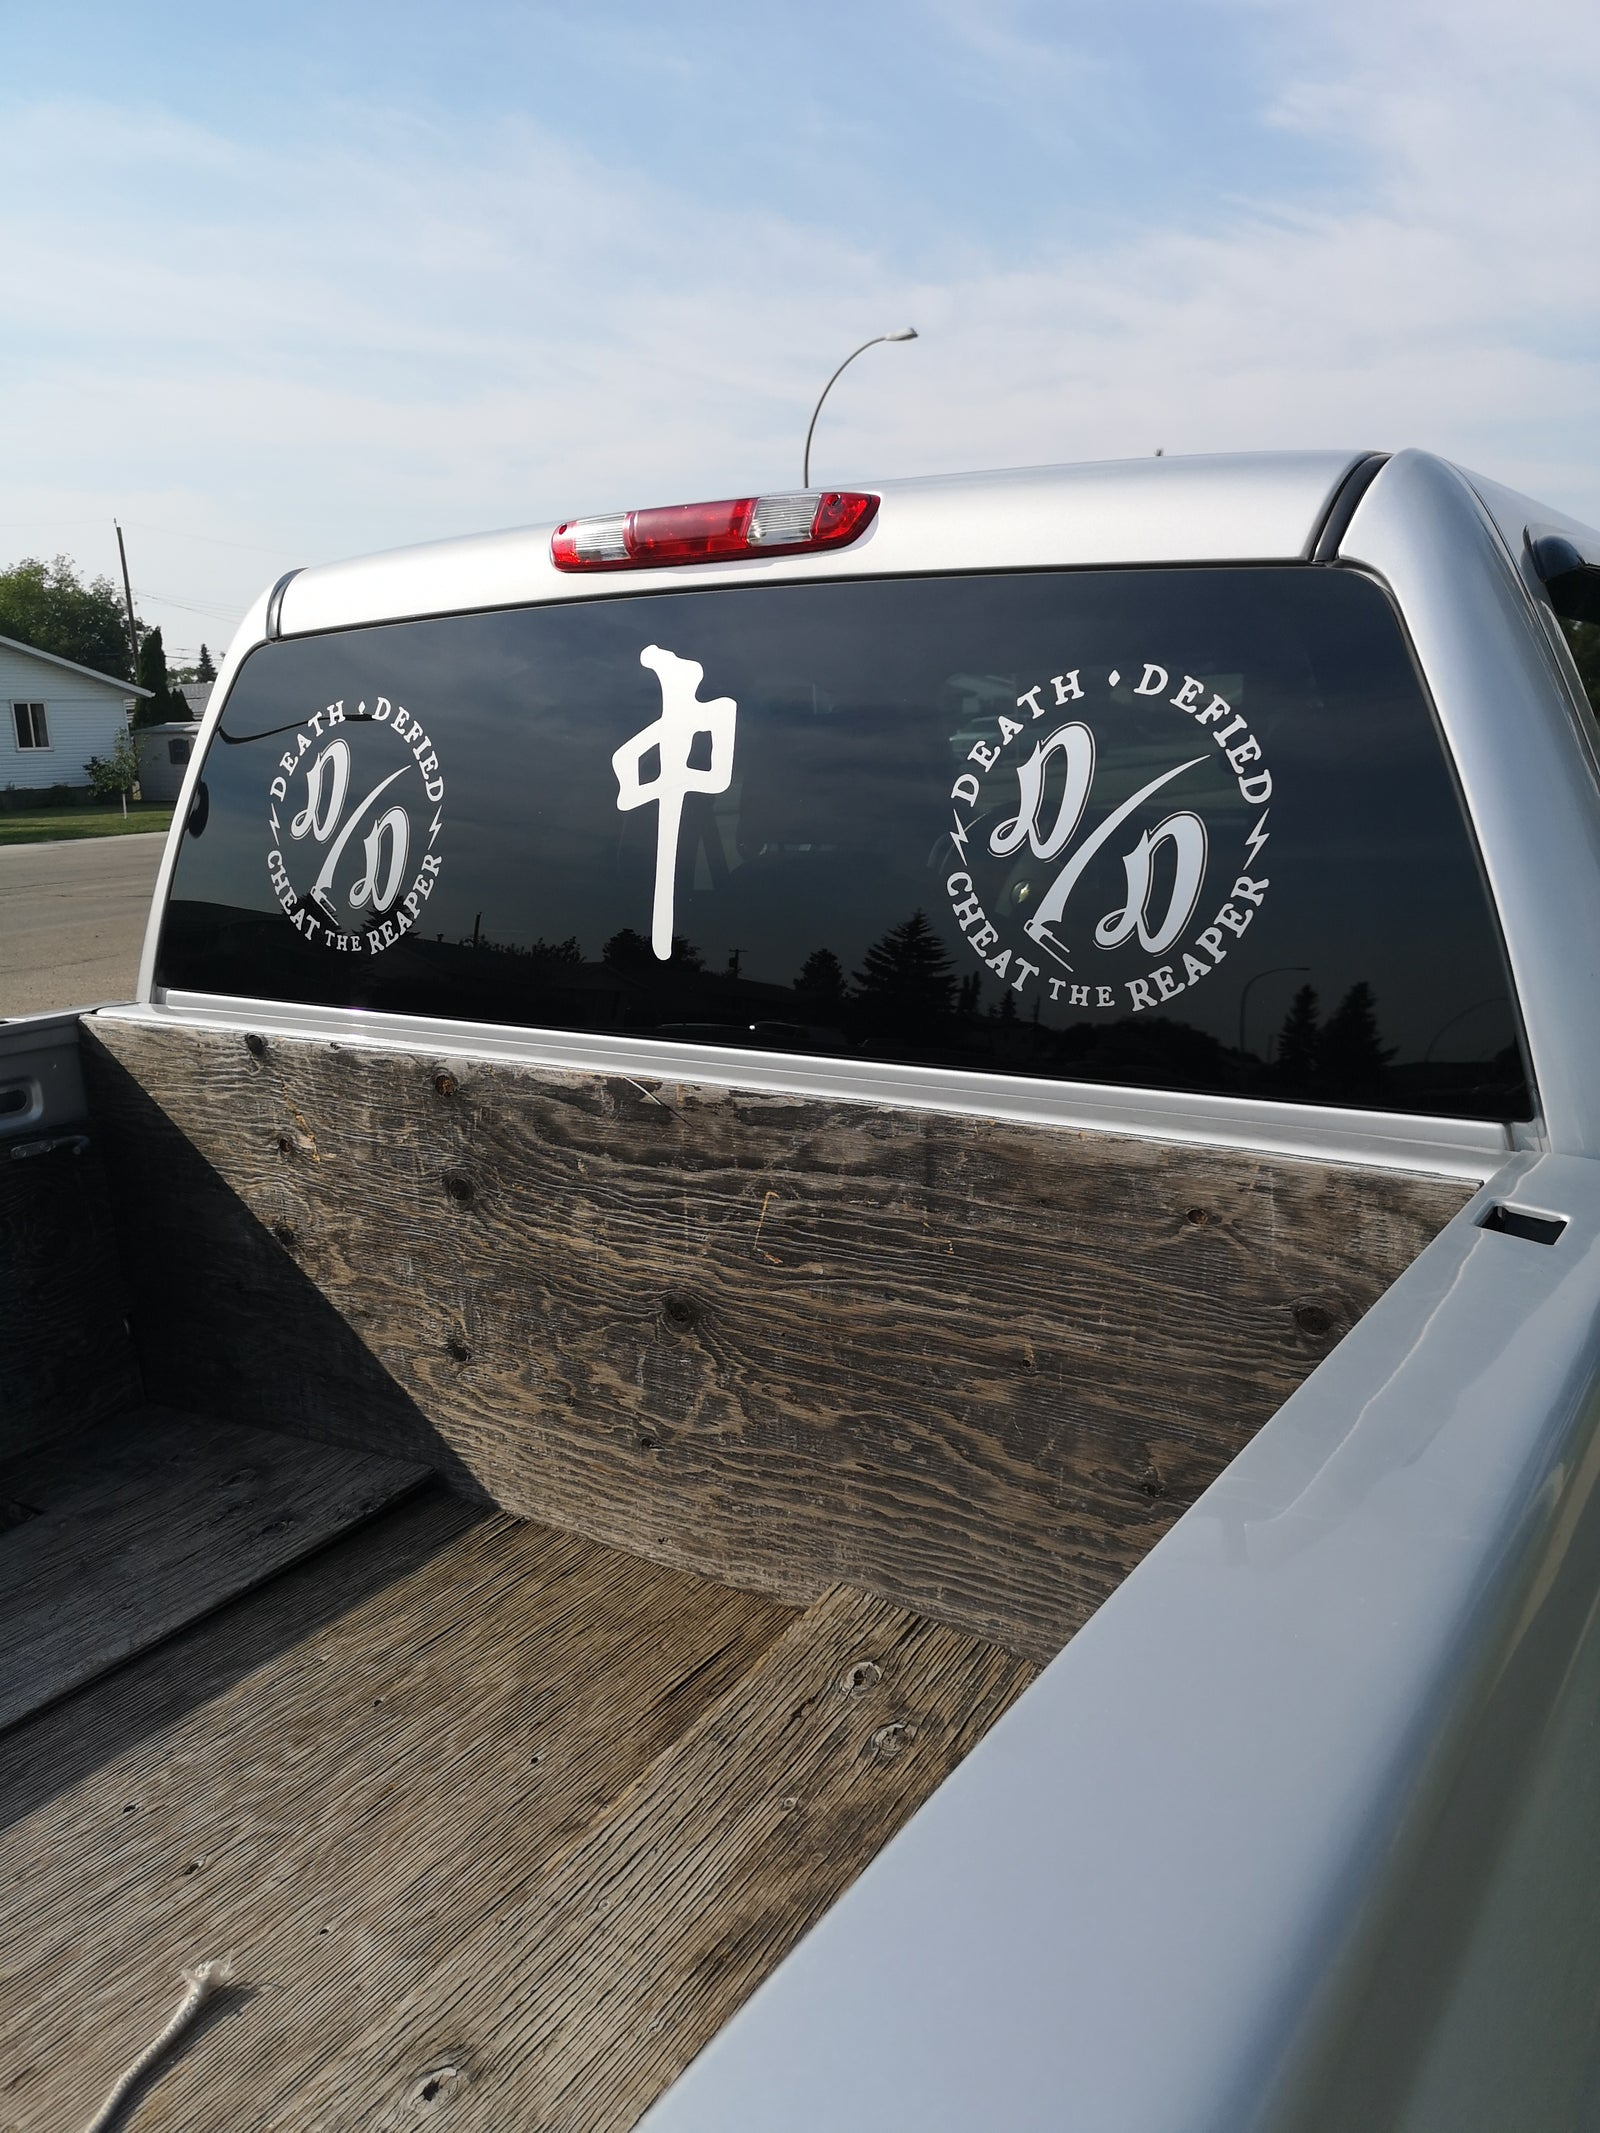 1ft x 1ft vehicle Decal